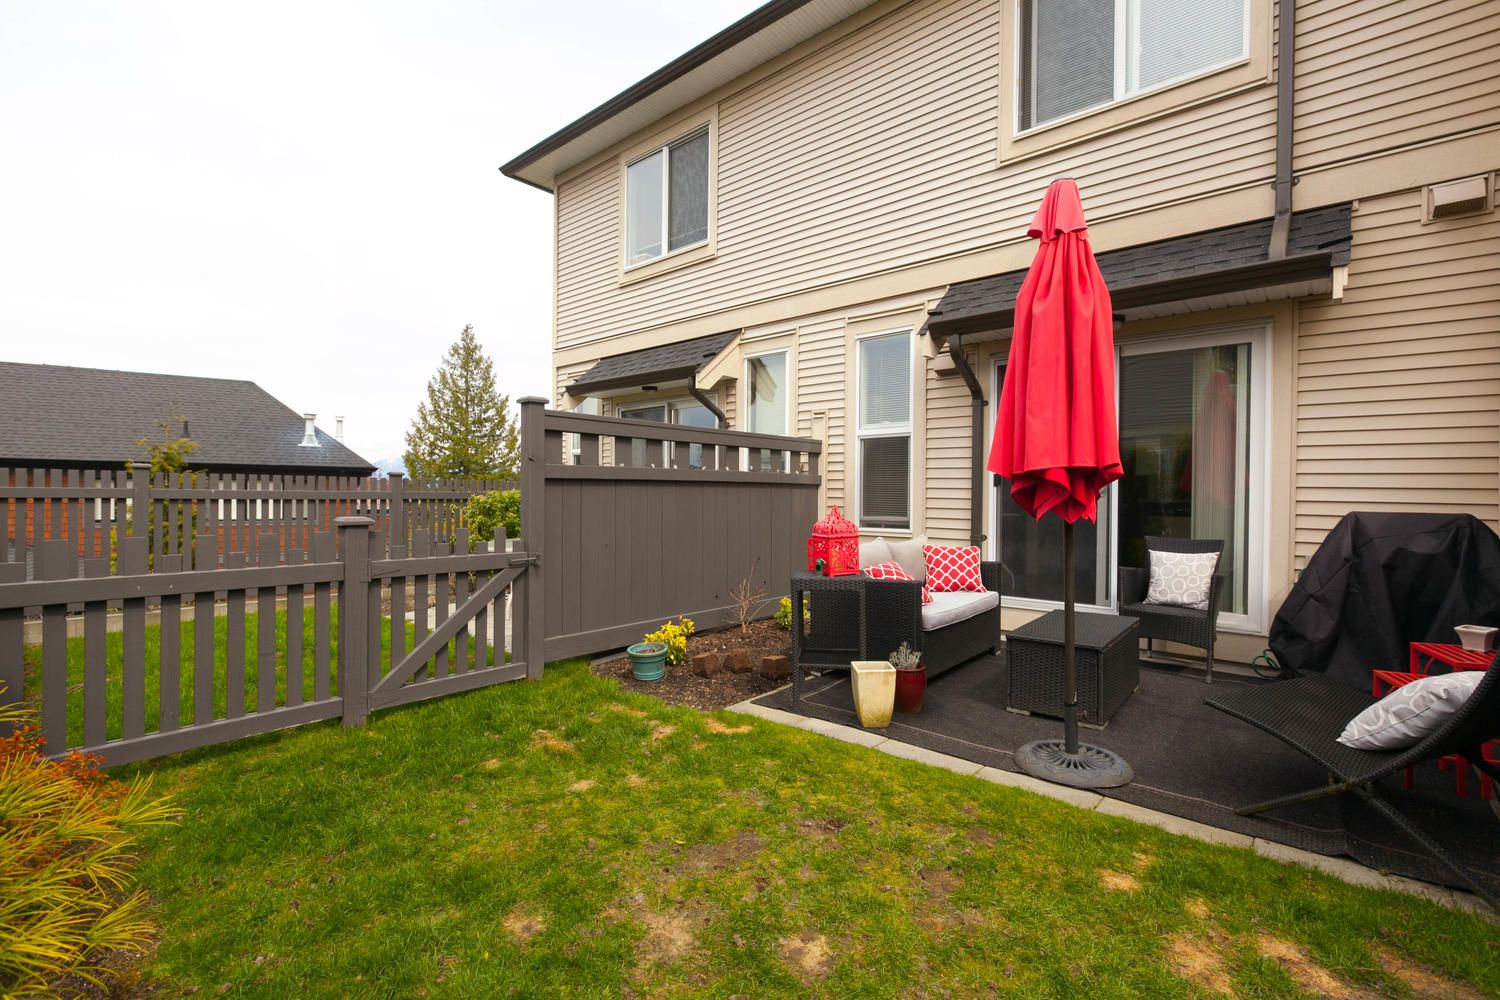 """Photo 40: Photos: 97 7938 209 Street in Langley: Willoughby Heights Townhouse for sale in """"Red Maple Park"""" : MLS®# R2260950"""